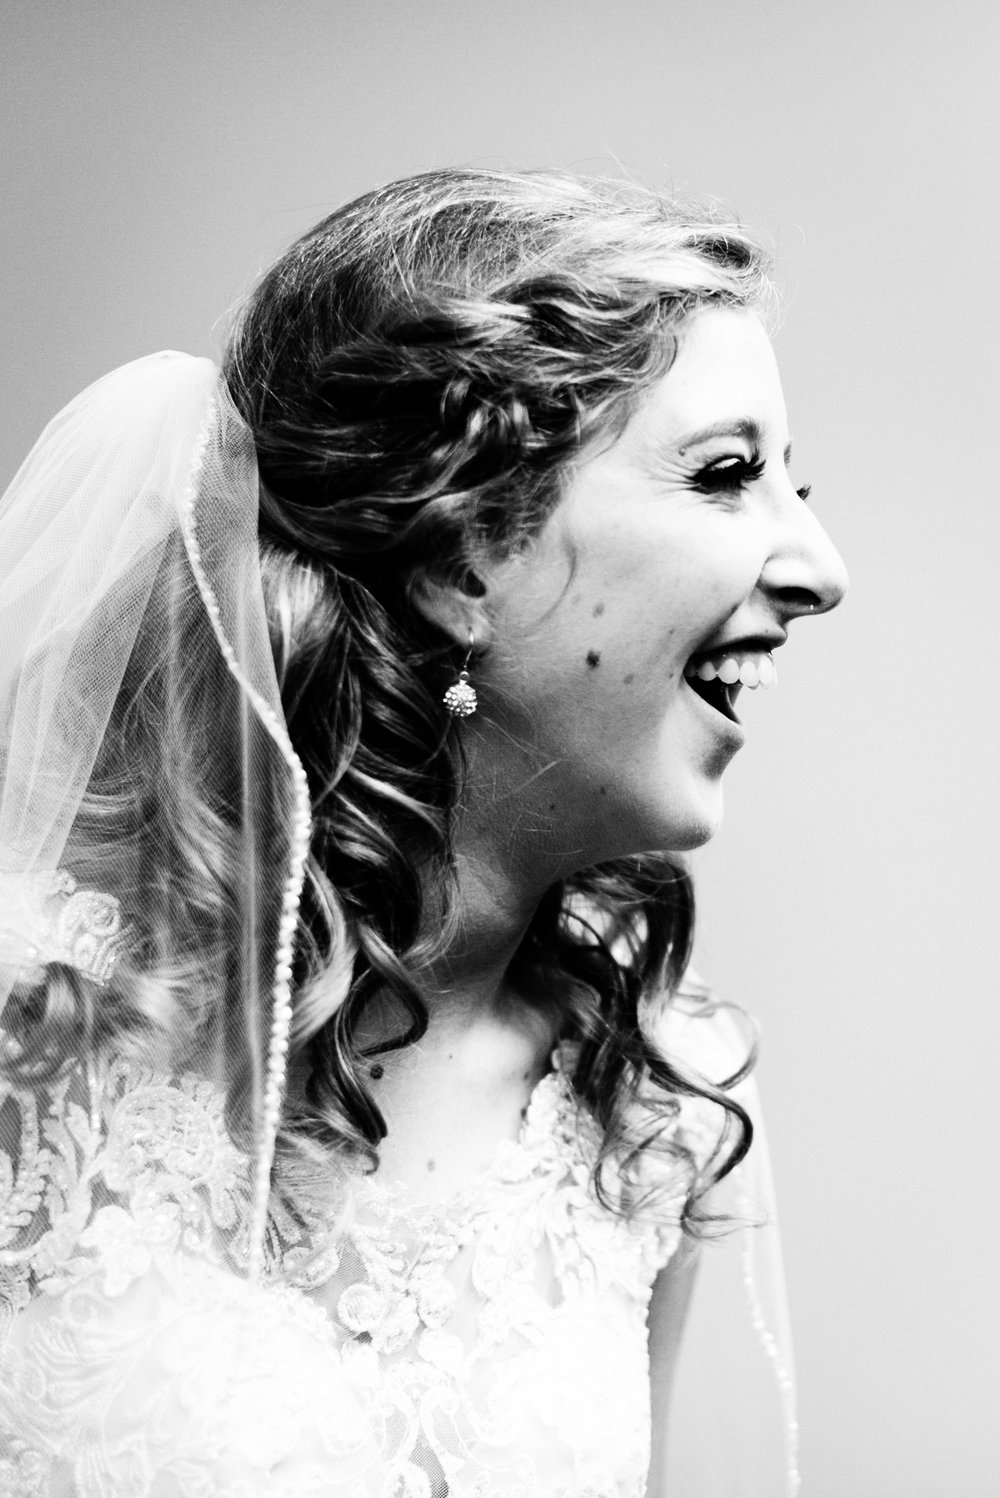 black and white, emotional wedding photography, destination wedding videography